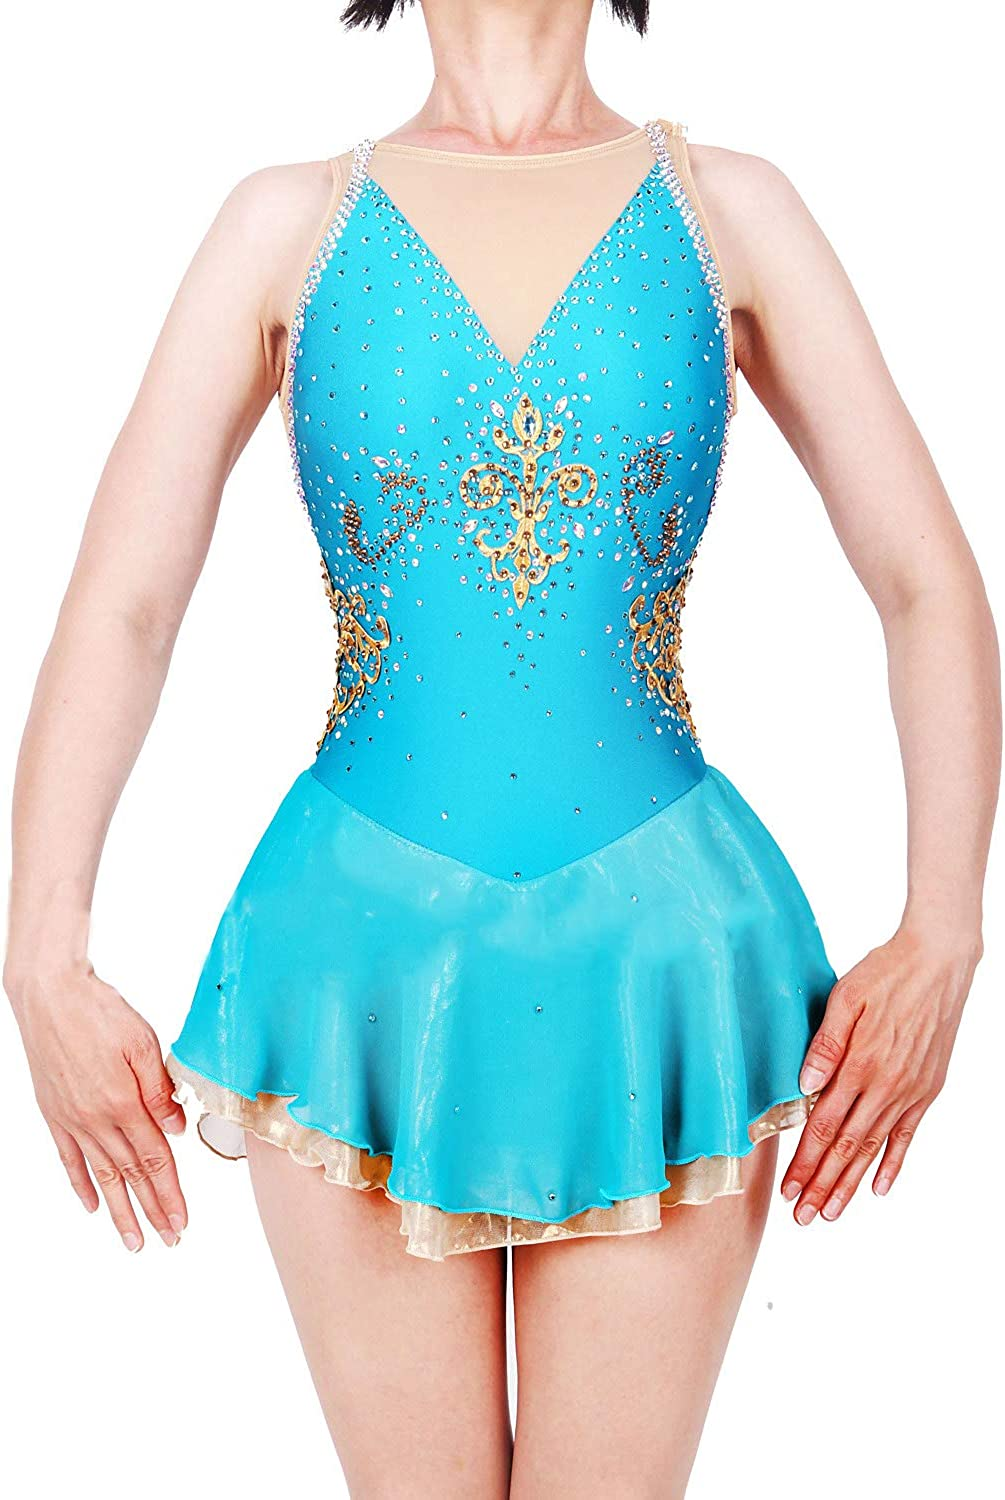 Heart&M Handmade Ice Skating Dress For Girls, bluee Figure Skating Competition Costume With Crystals Sleeveless